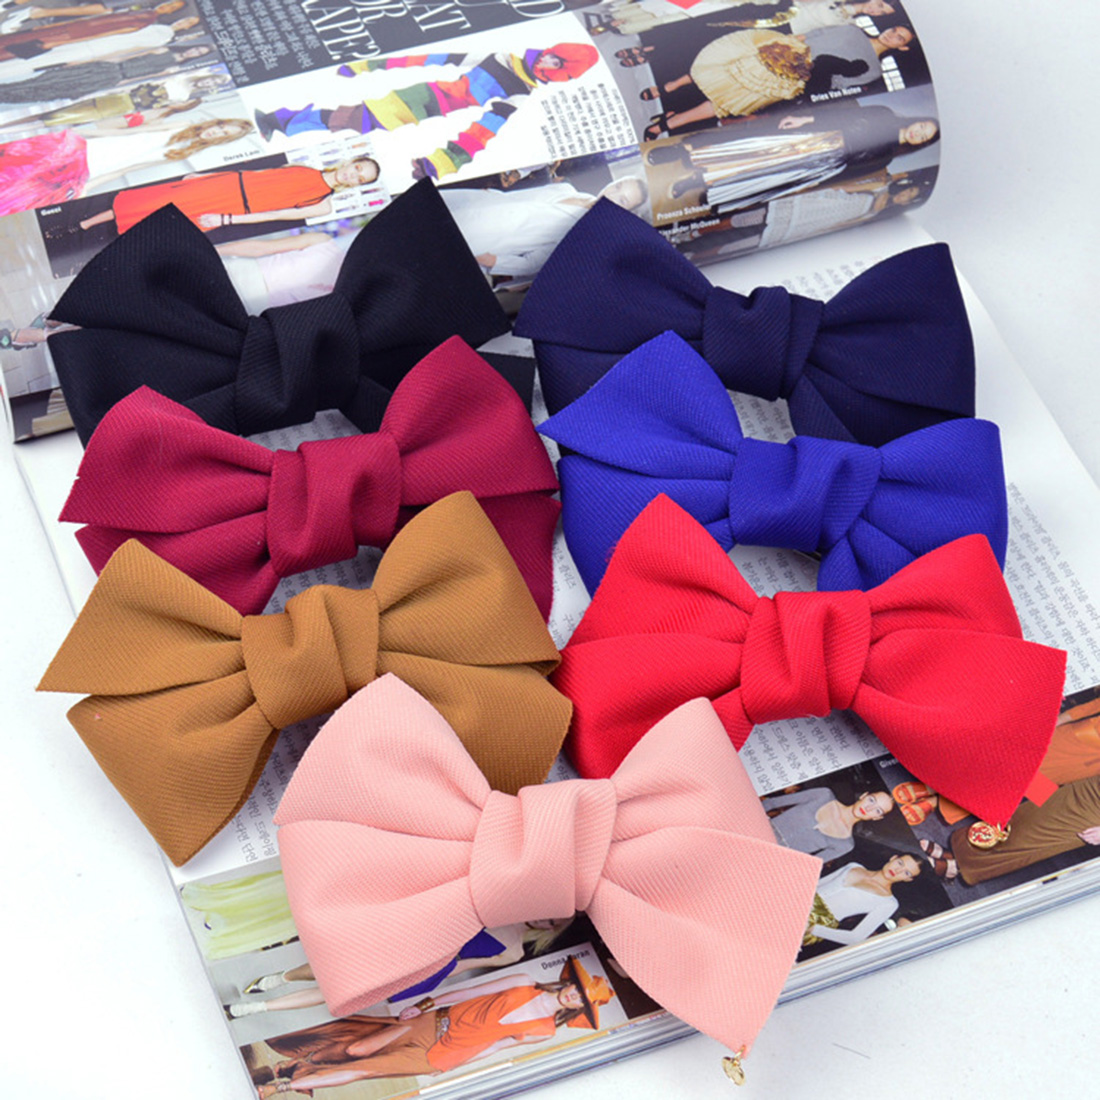 2017 Fashion 2017 New Arrival Big Solid Cloth Bows Hair Clips Hairpins Hair Accessories for Women Girl Wedding Hair Jewelry in Women 39 s Hair Accessories from Apparel Accessories